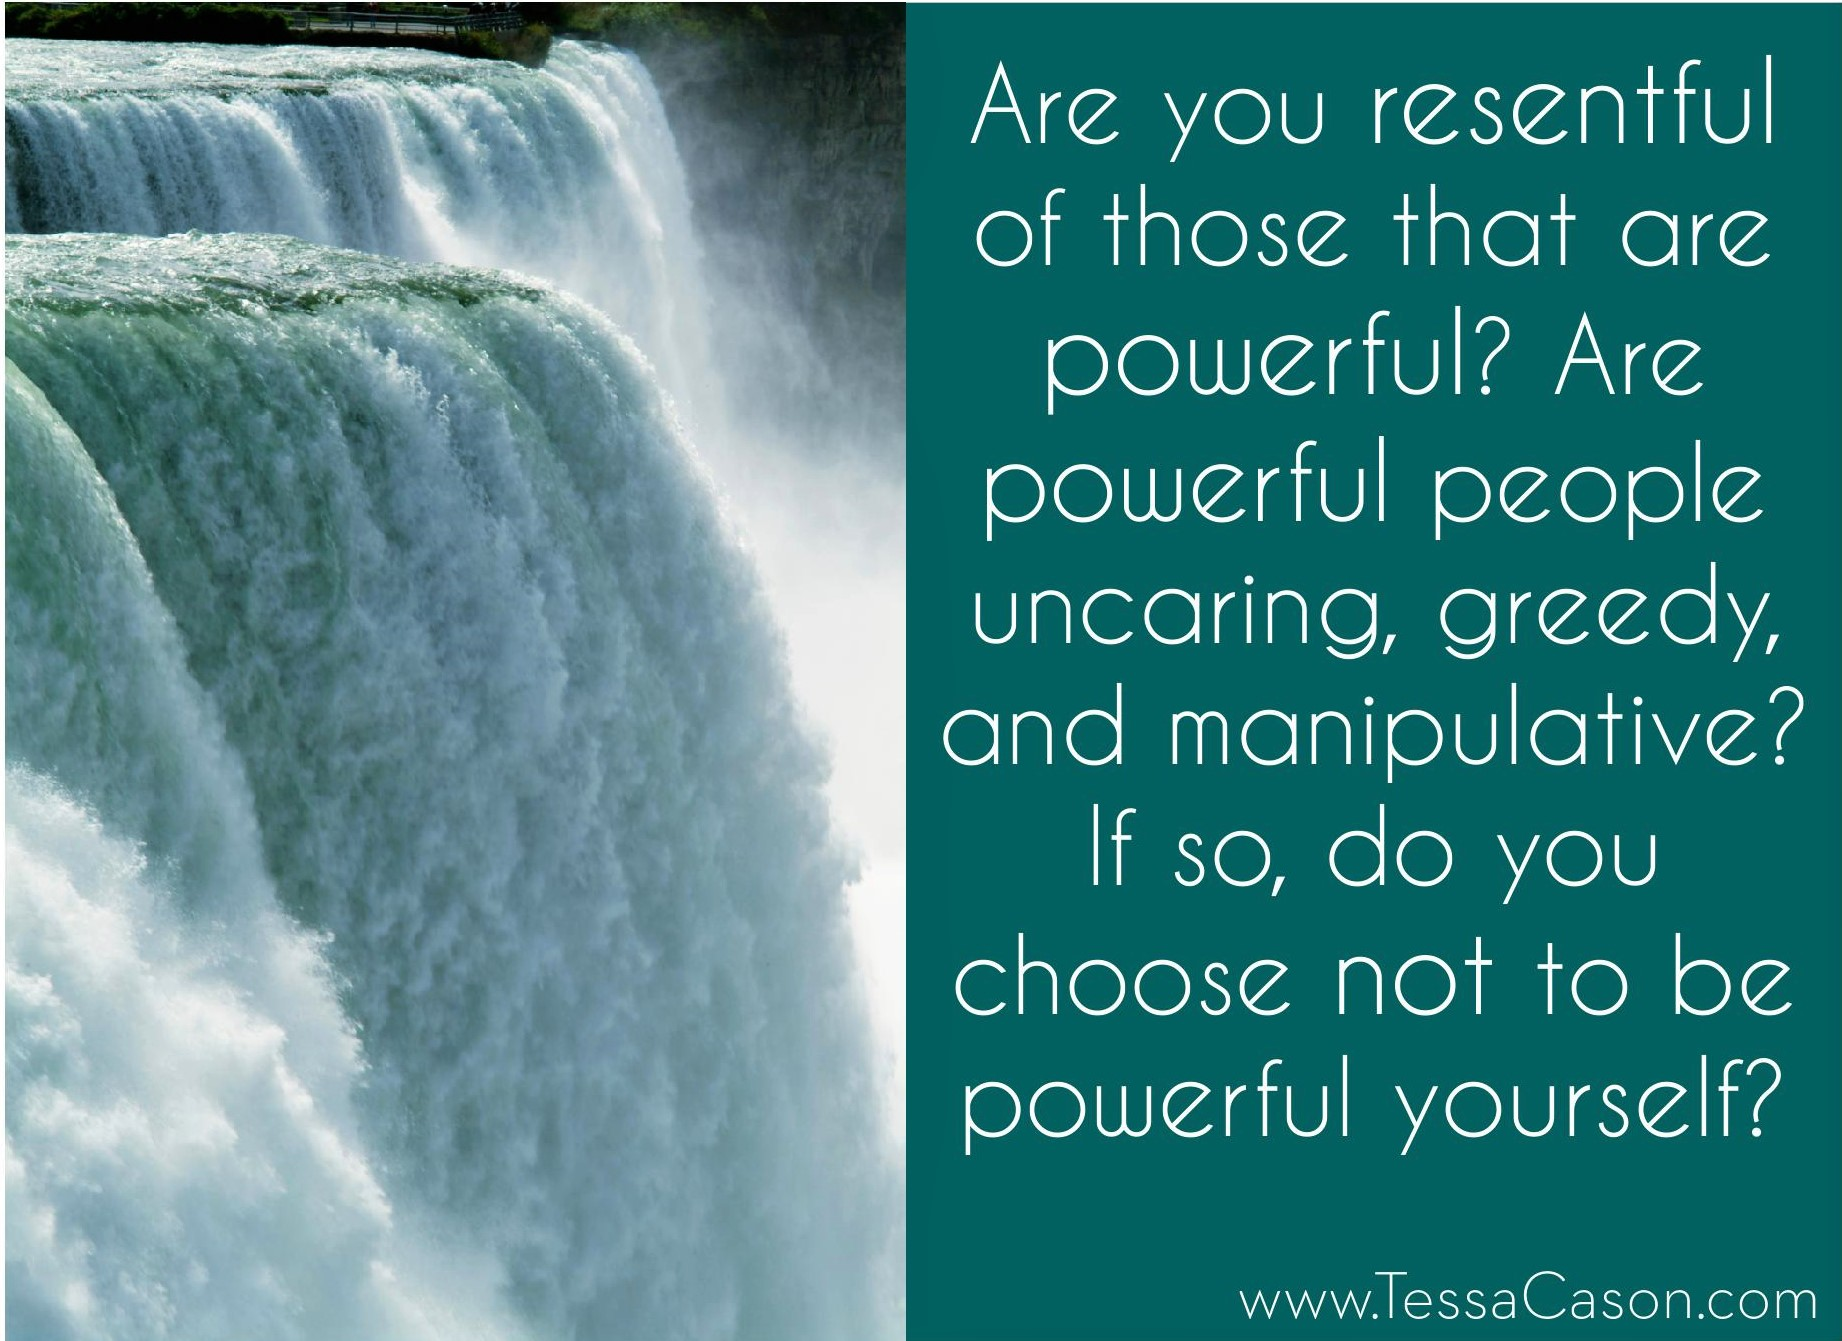 Are you resentful of powerful people